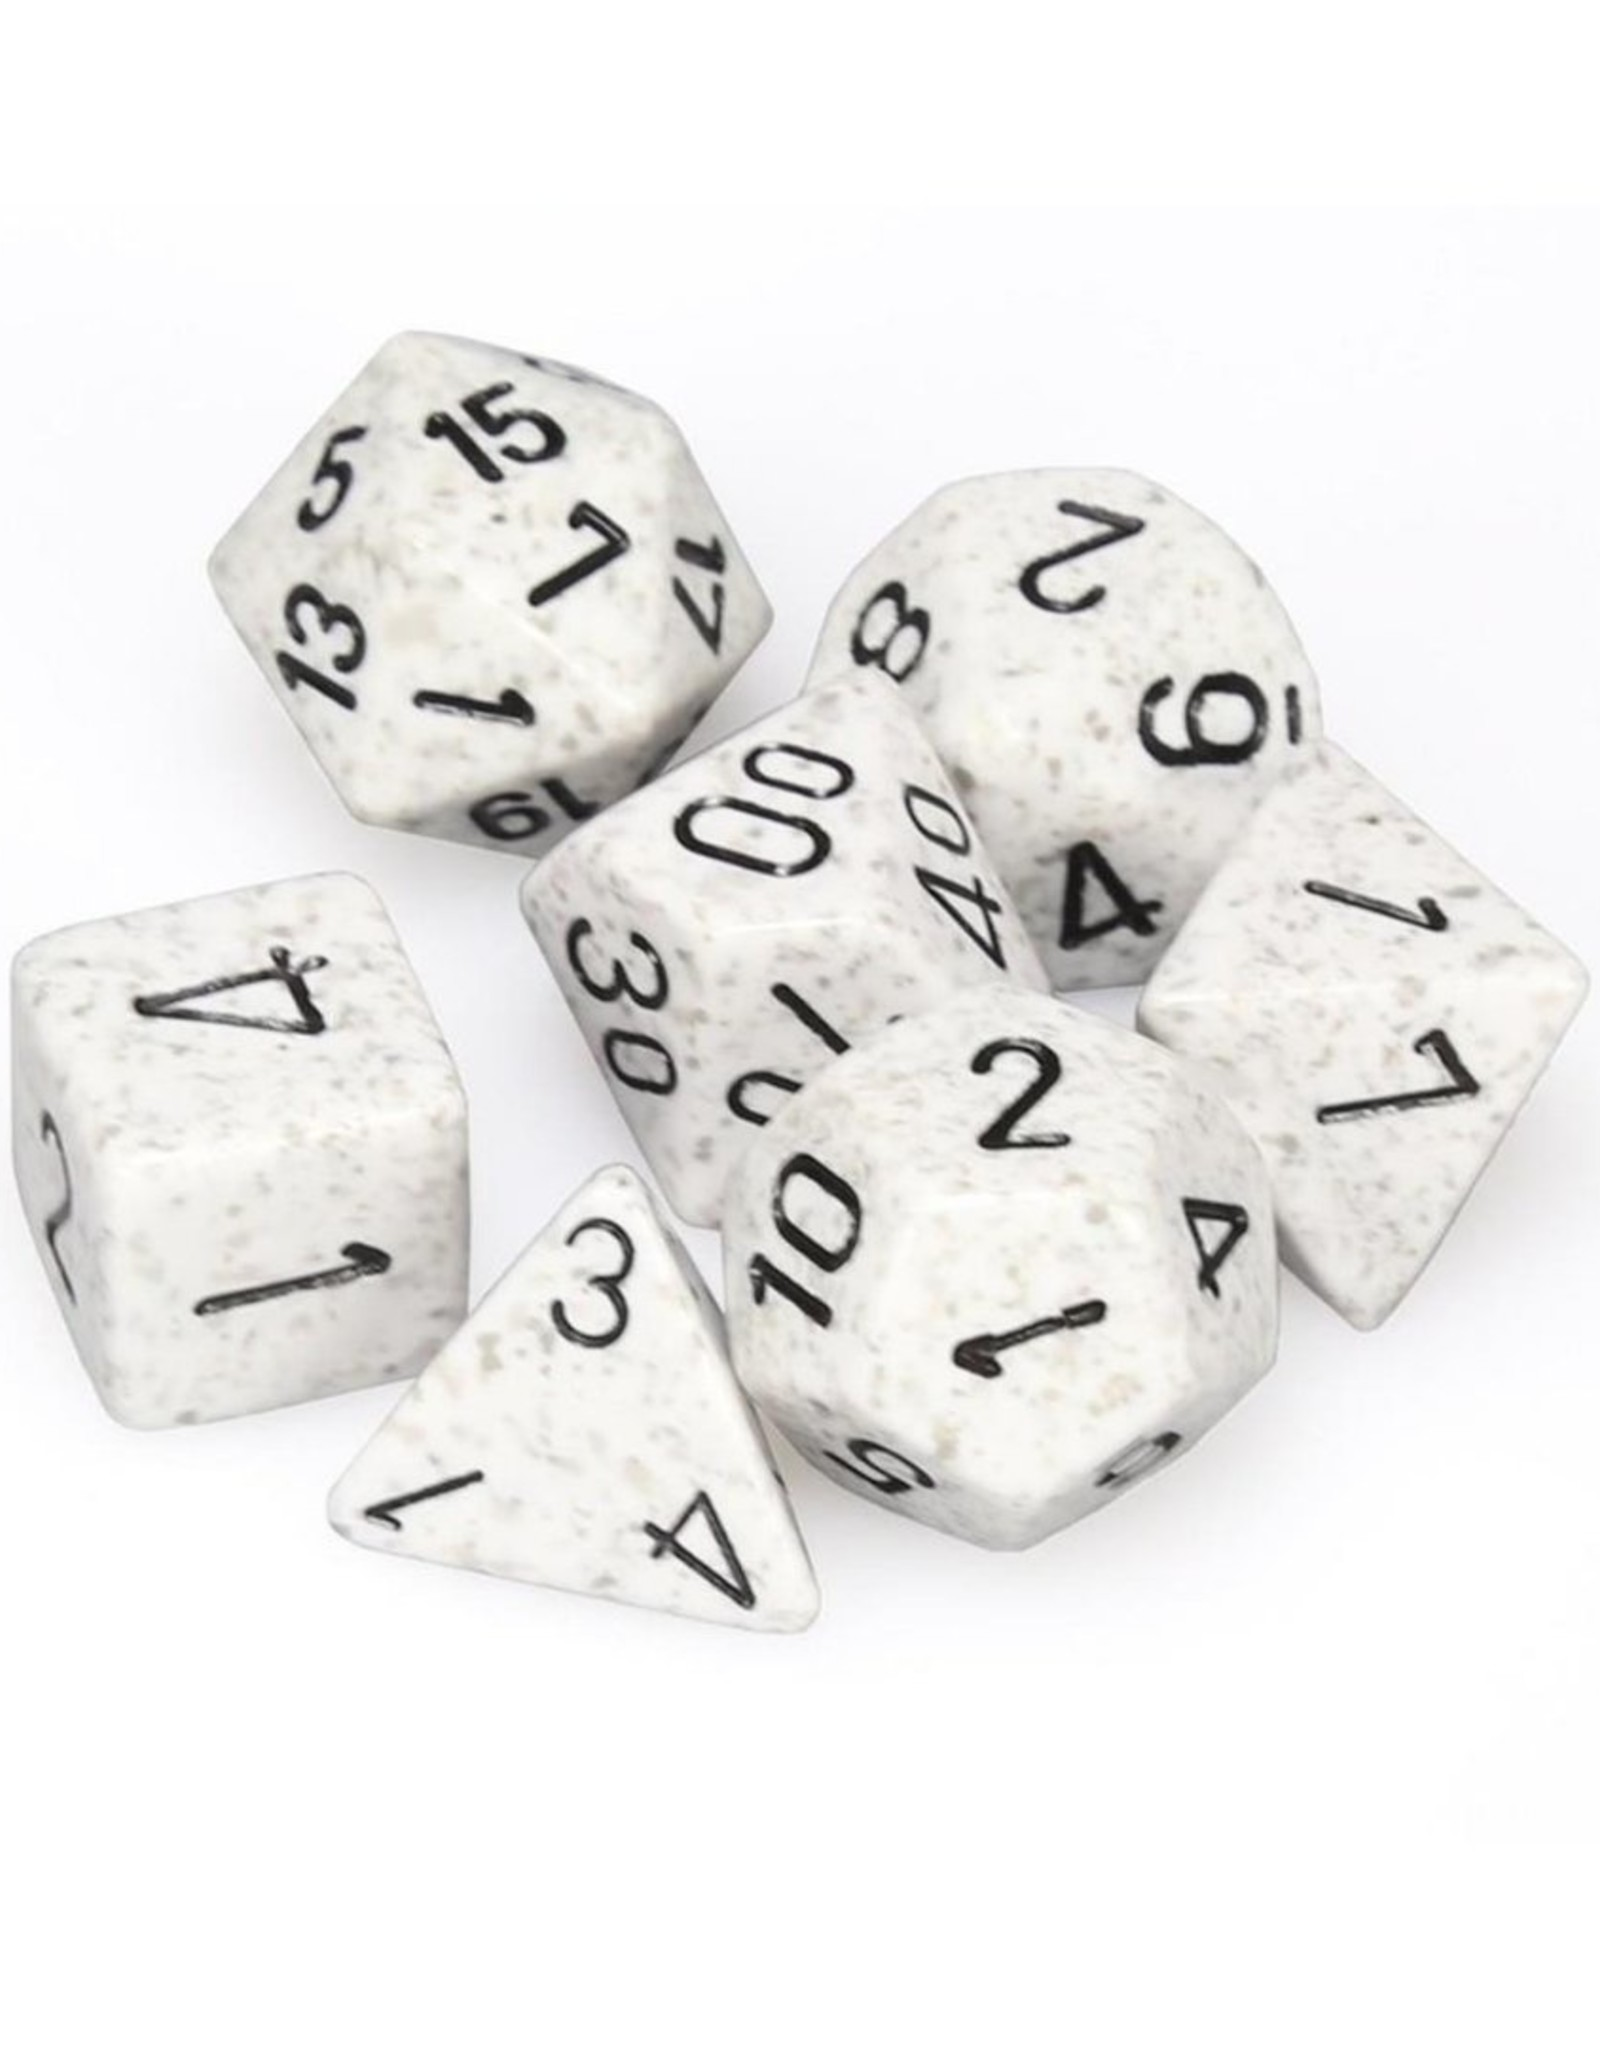 Chessex Chessex 7-Die set Speckled - Arctic Camo